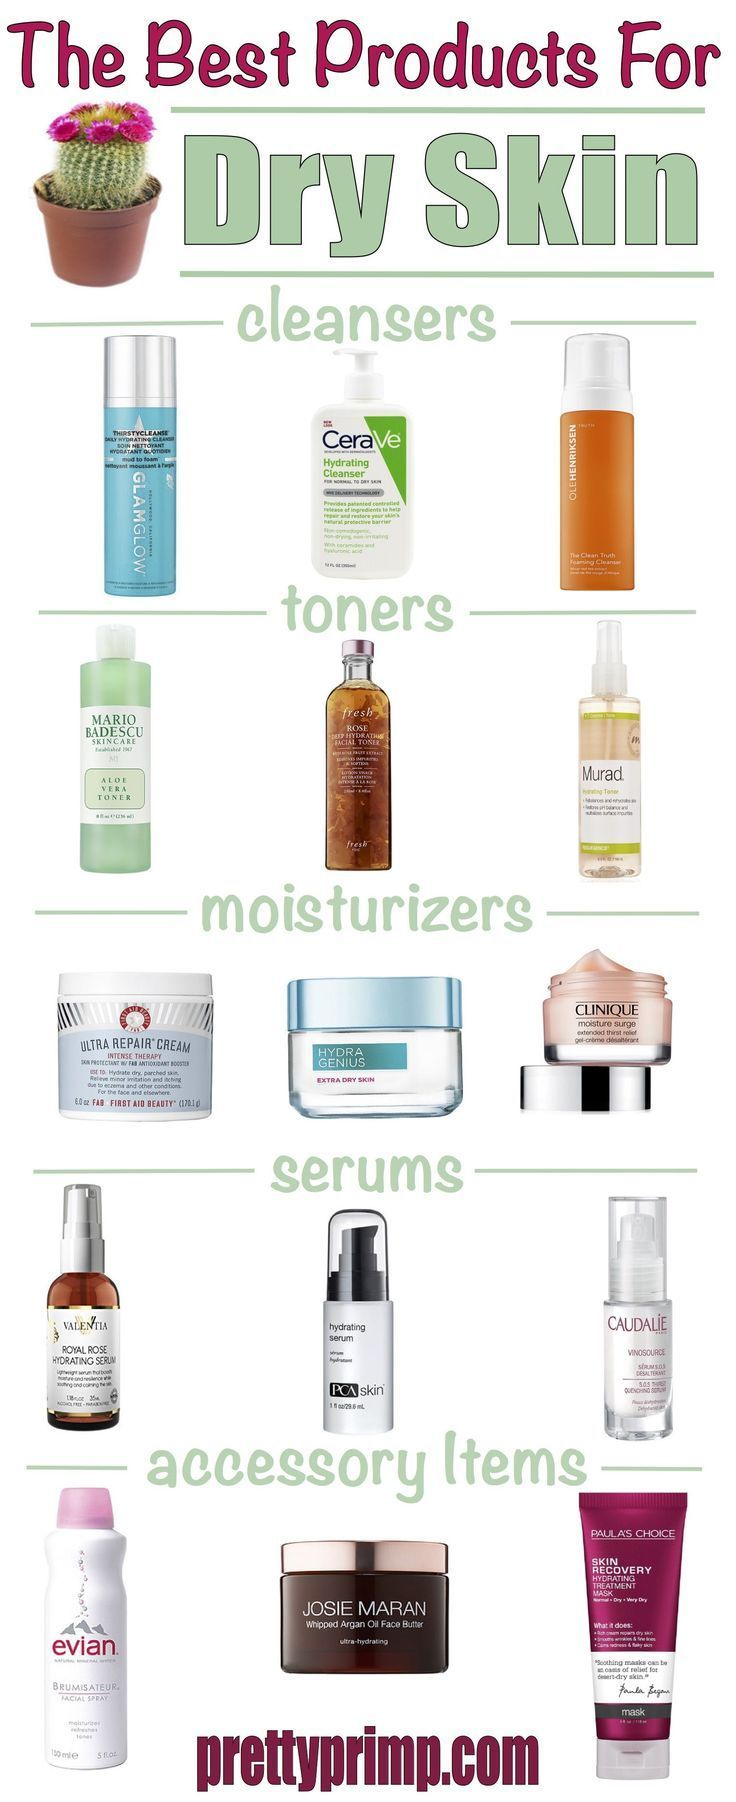 Check Out The Best Products For Dry Skin From The Drugstore And High End These Skincare Products F Skin Cleanser Products Dry Skin Cleansers Dry Skin Remedies